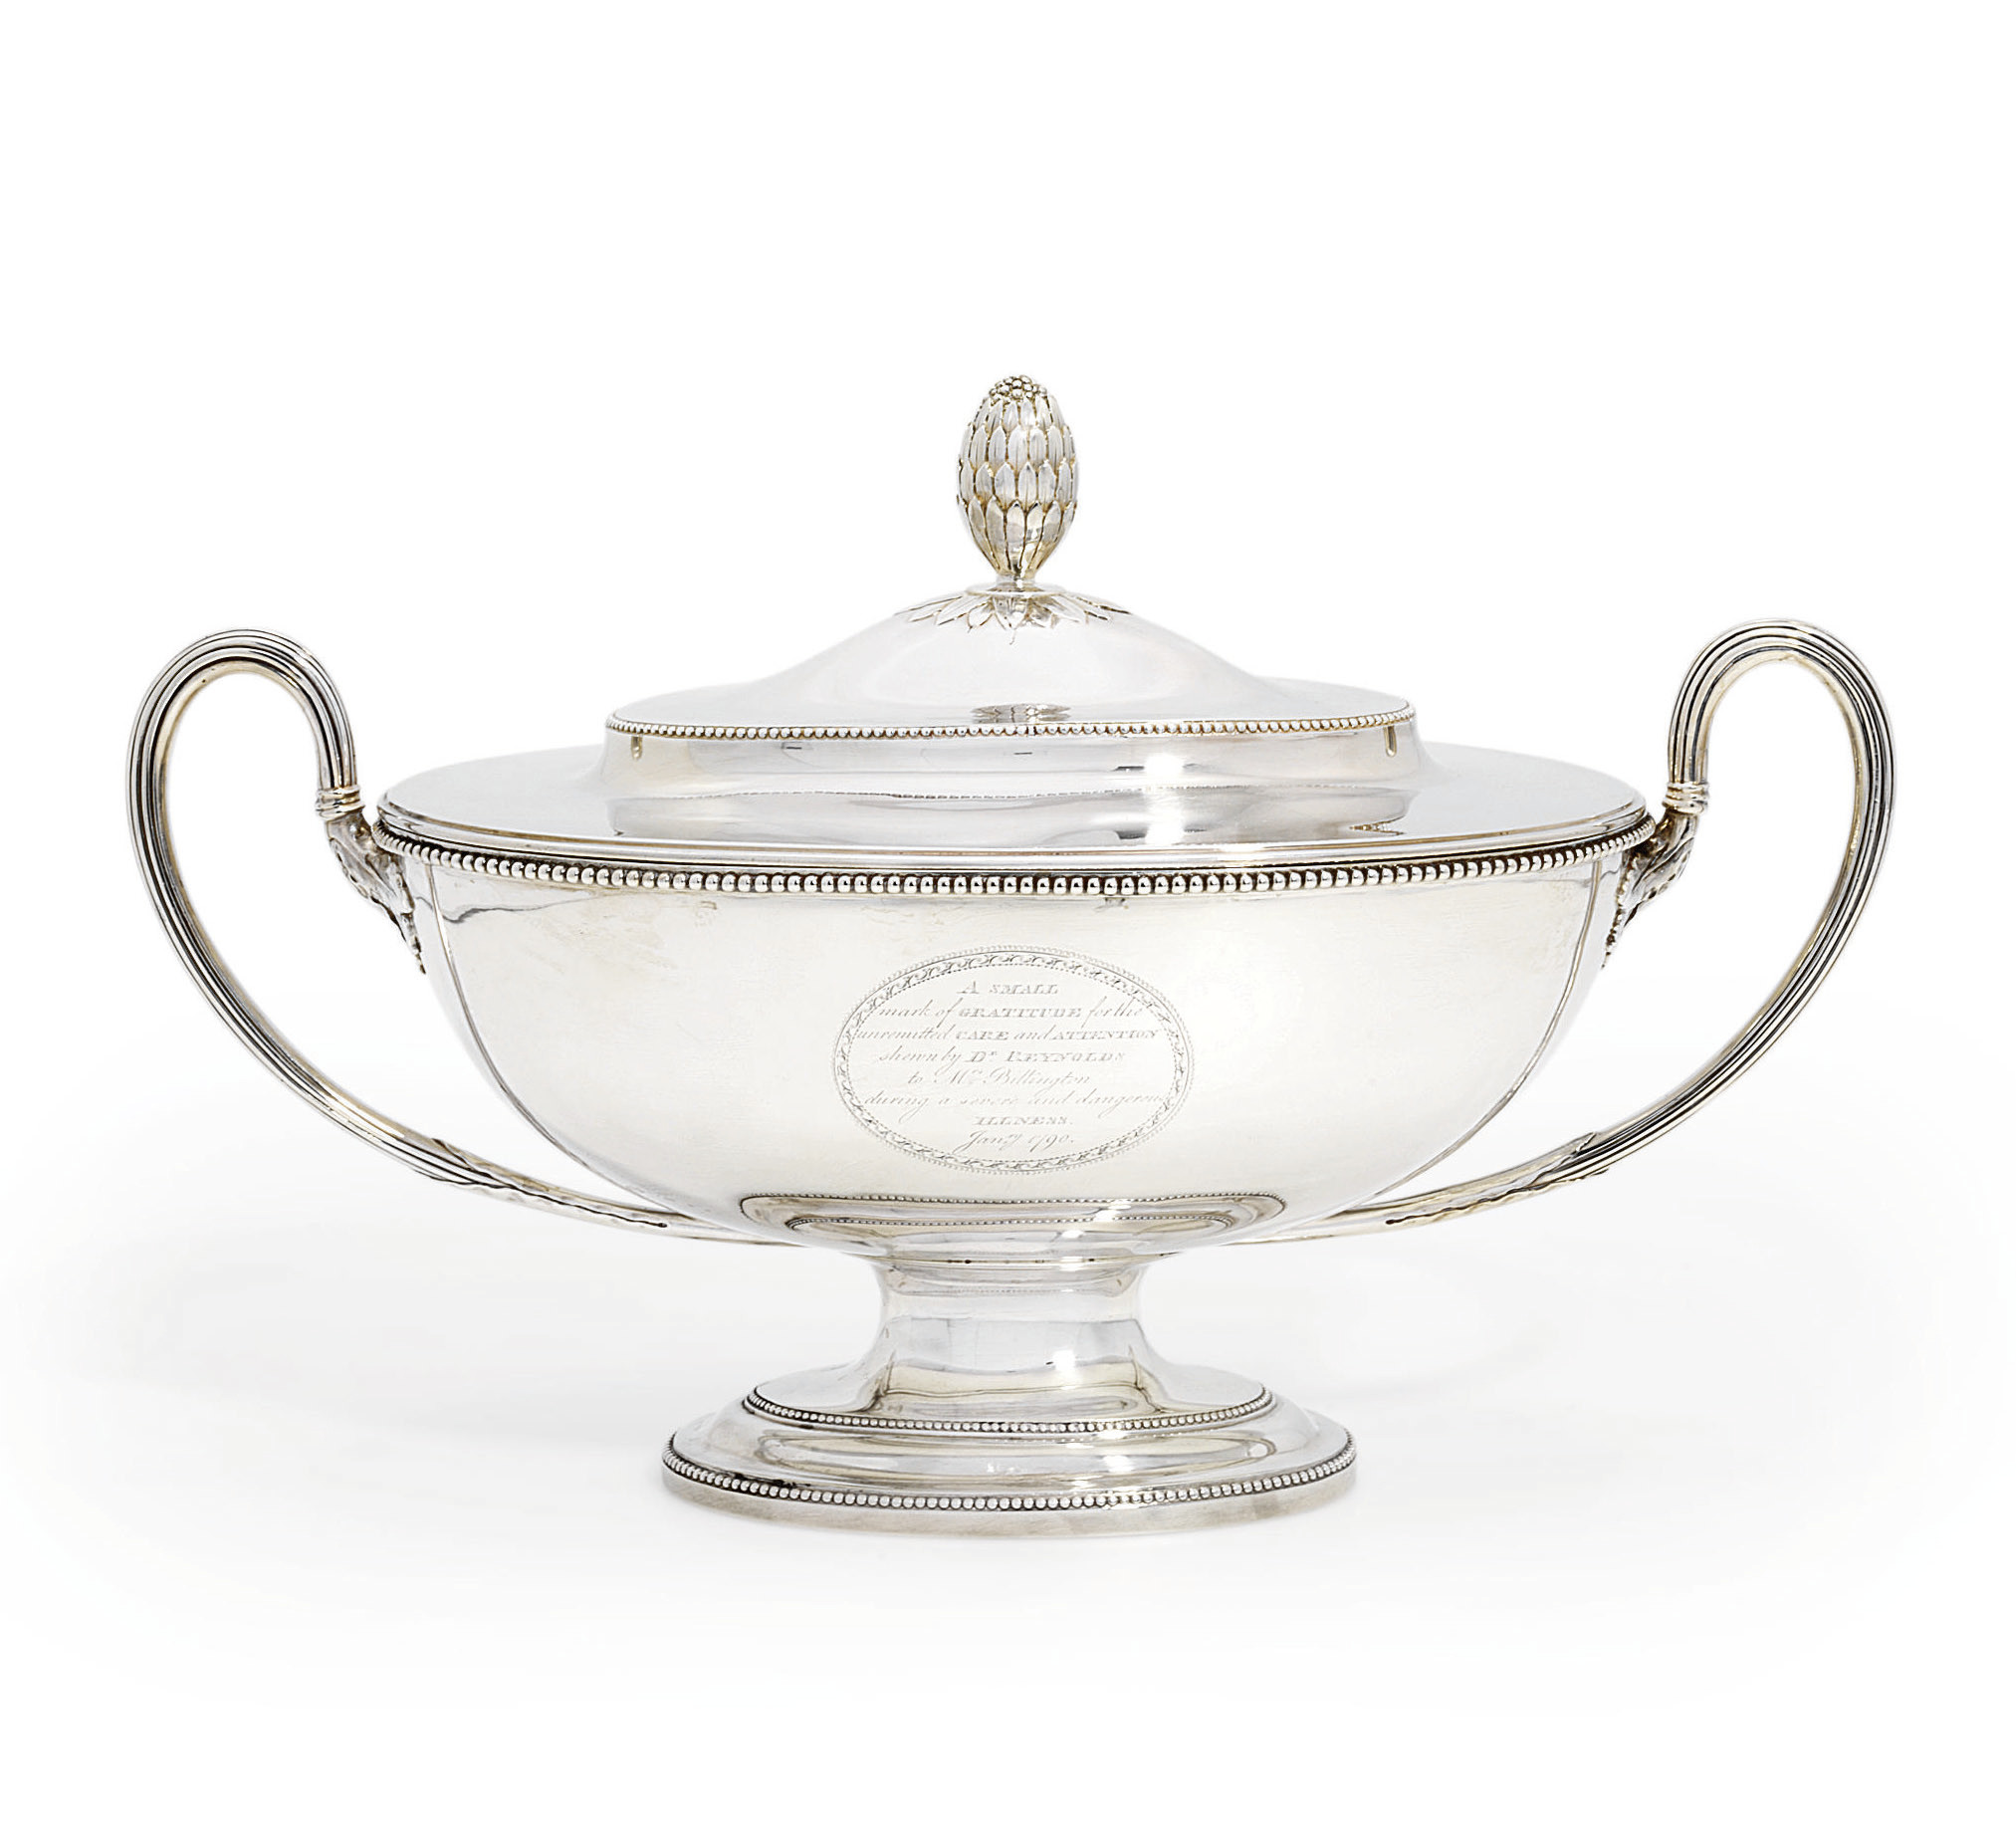 A GEORGE III SOUP TUREEN AND C